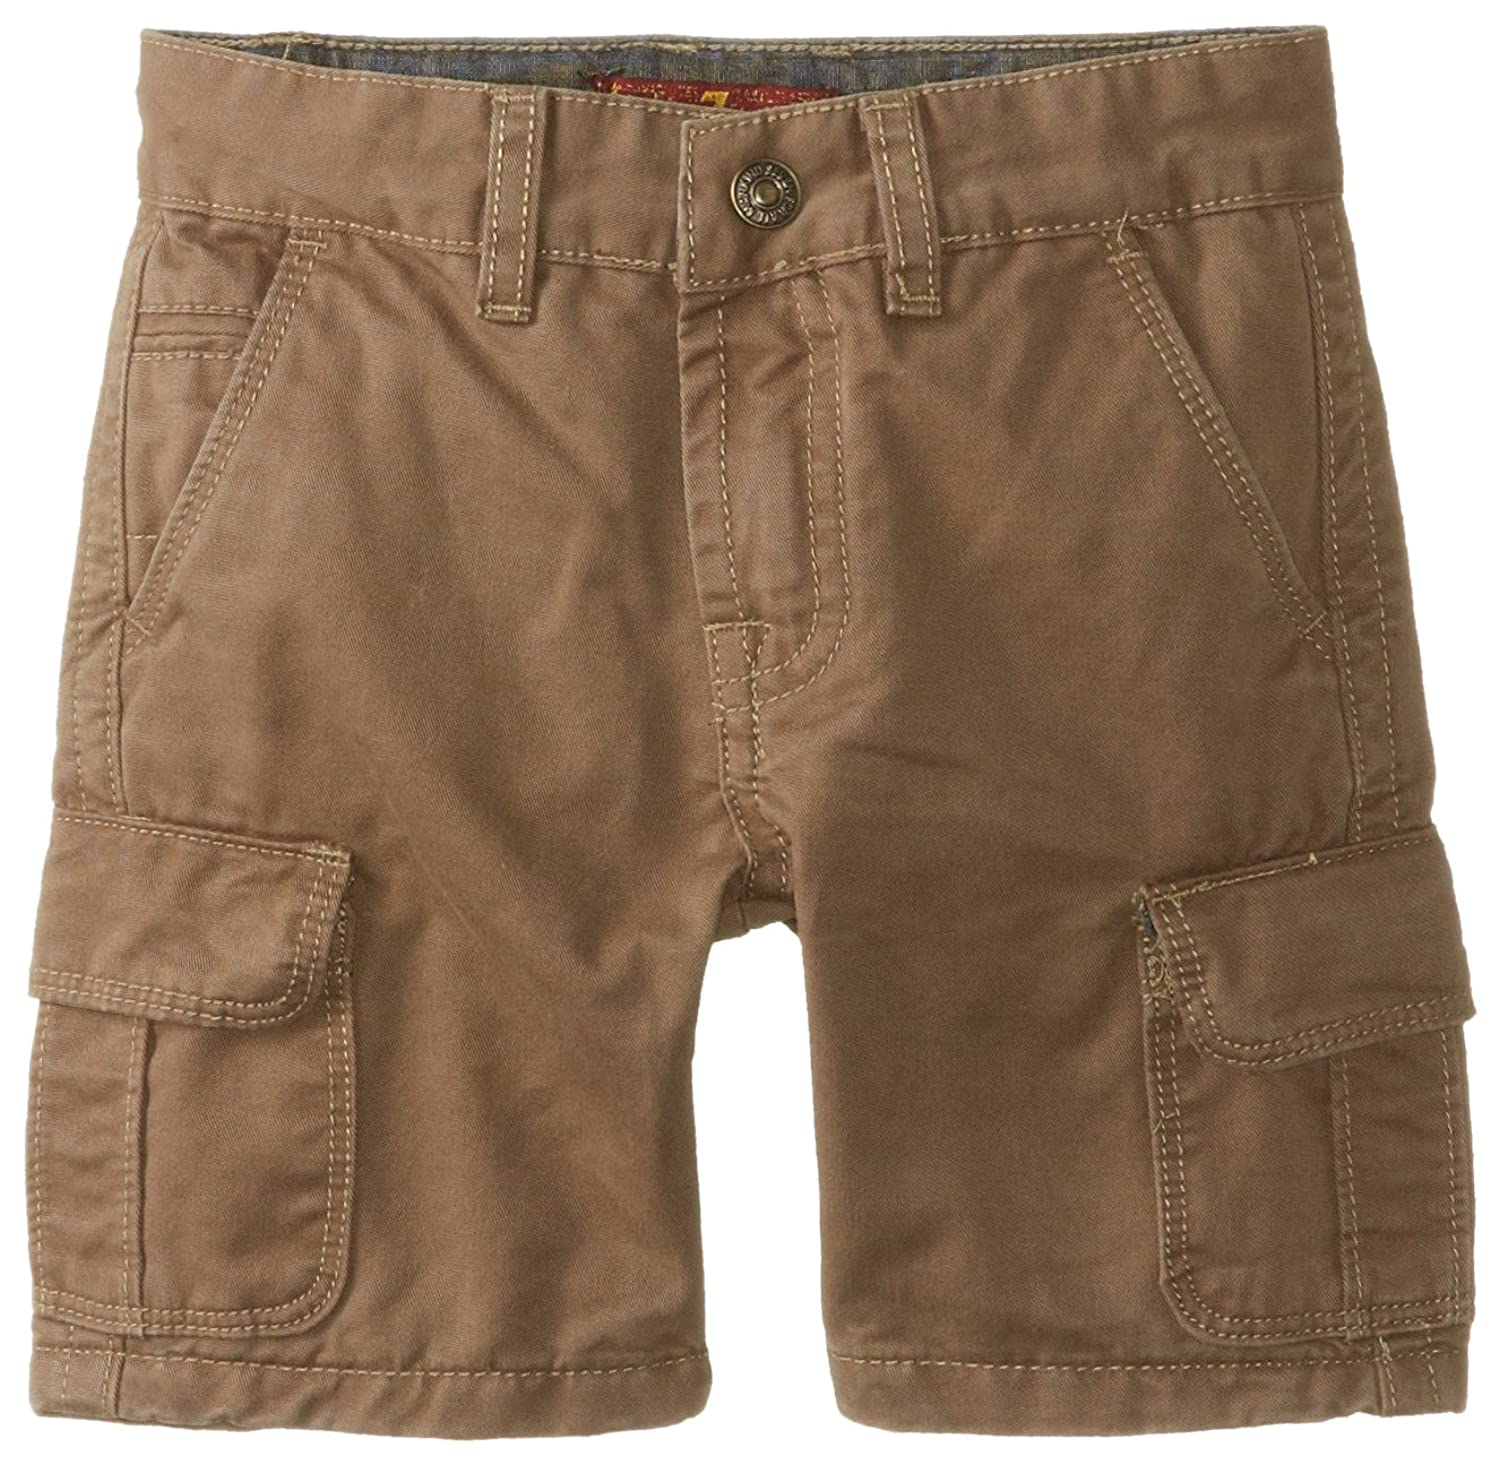 7 for All Mankind Little Boys' Carsen Cargo Jeans